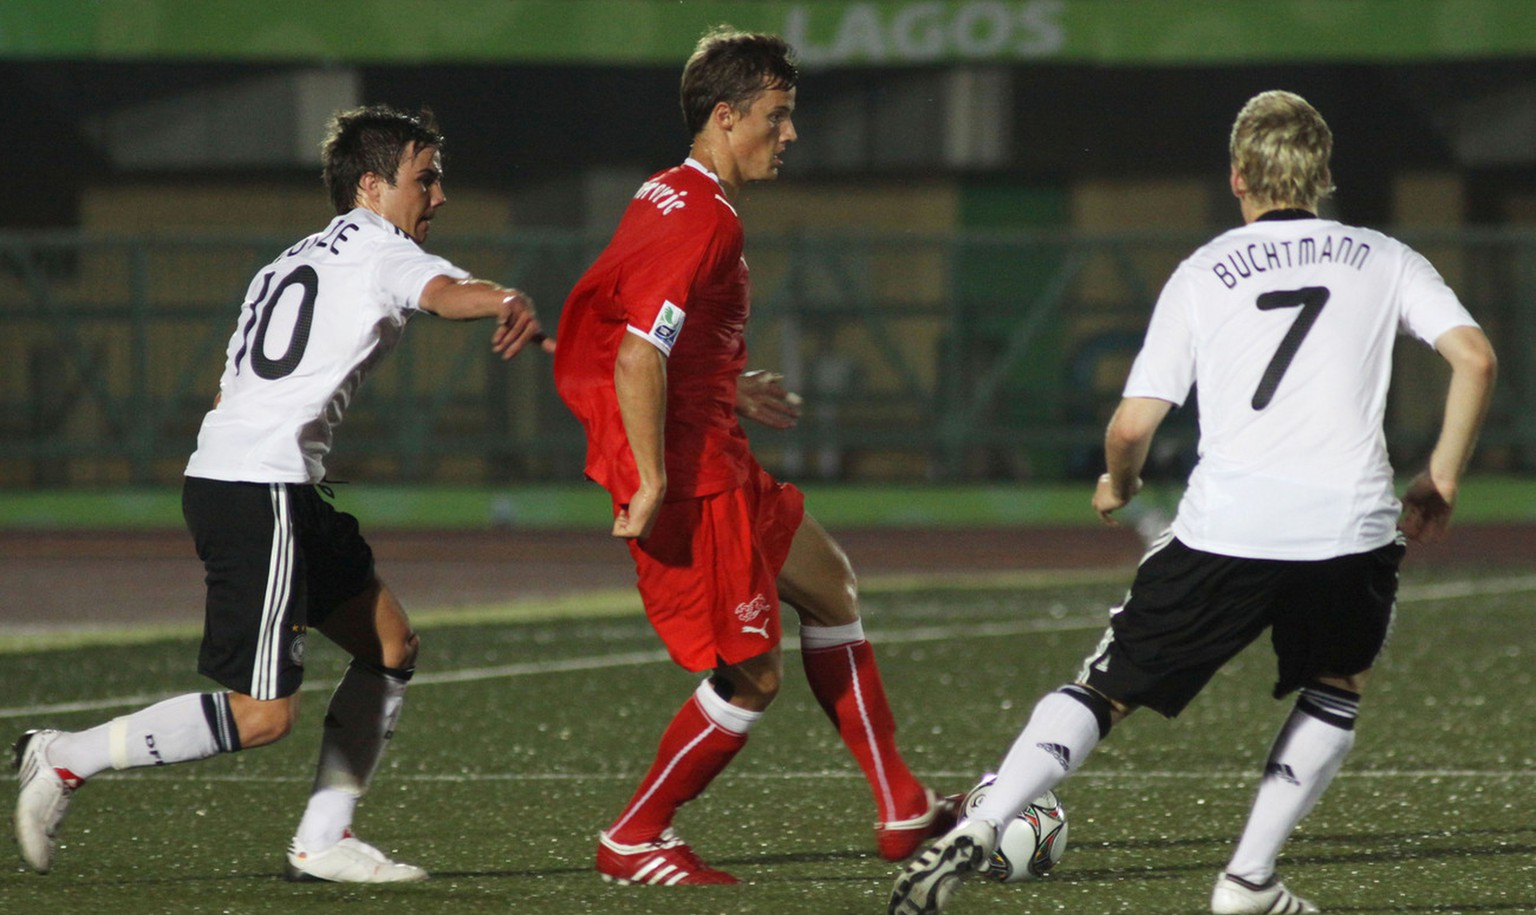 Switzerland's Haris Seferovic, center, is challenged by Germany's Mario Goetze, left, and Christopher Buchtmann during their U17 World Cup round of 16 soccer match in Lagos, Nigeria Wednesday, Nov. 4, 2009. (AP Photo/Sunday Alamba)